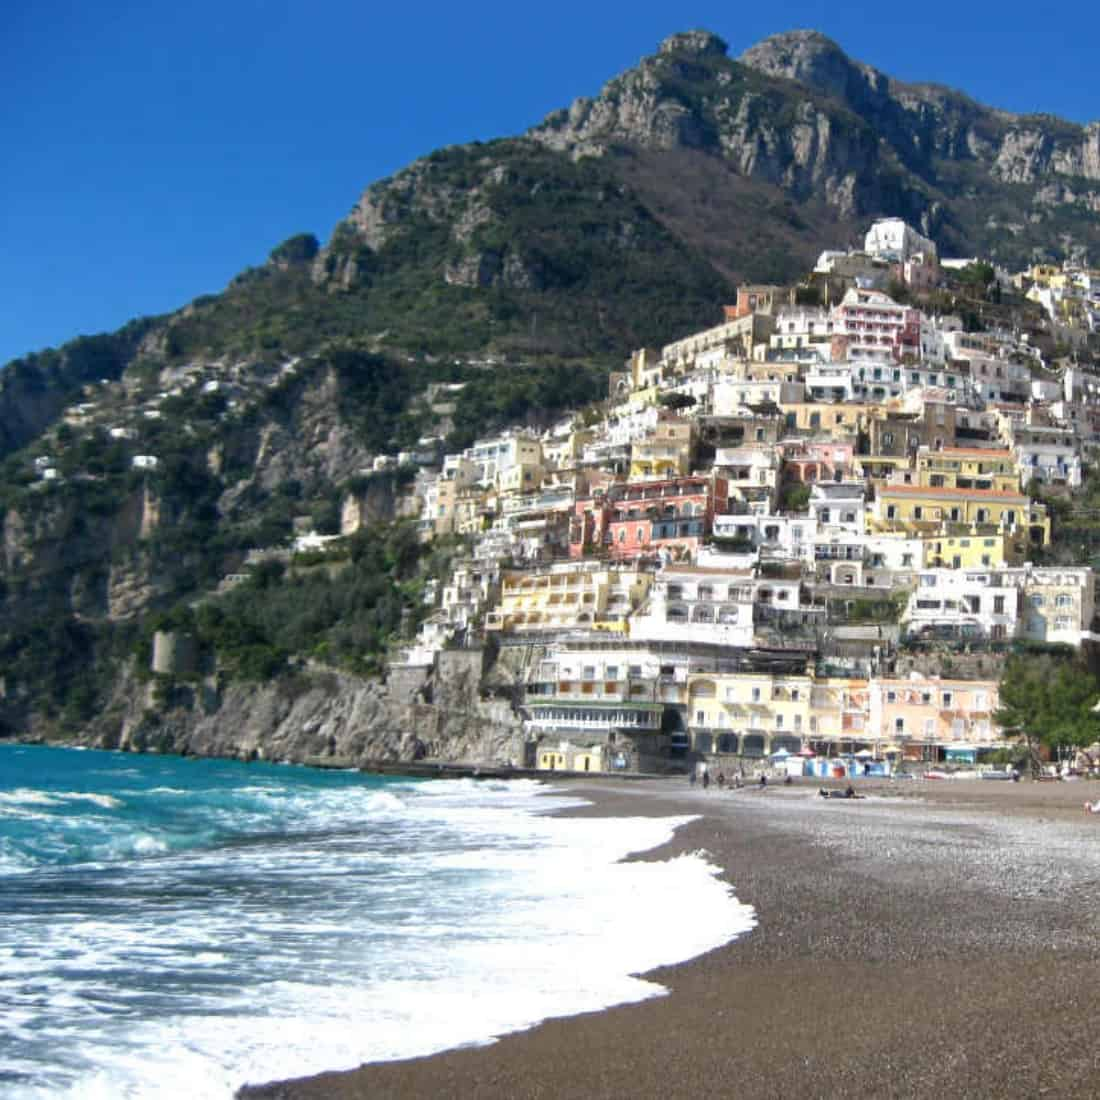 Positano beach and town on the hillside